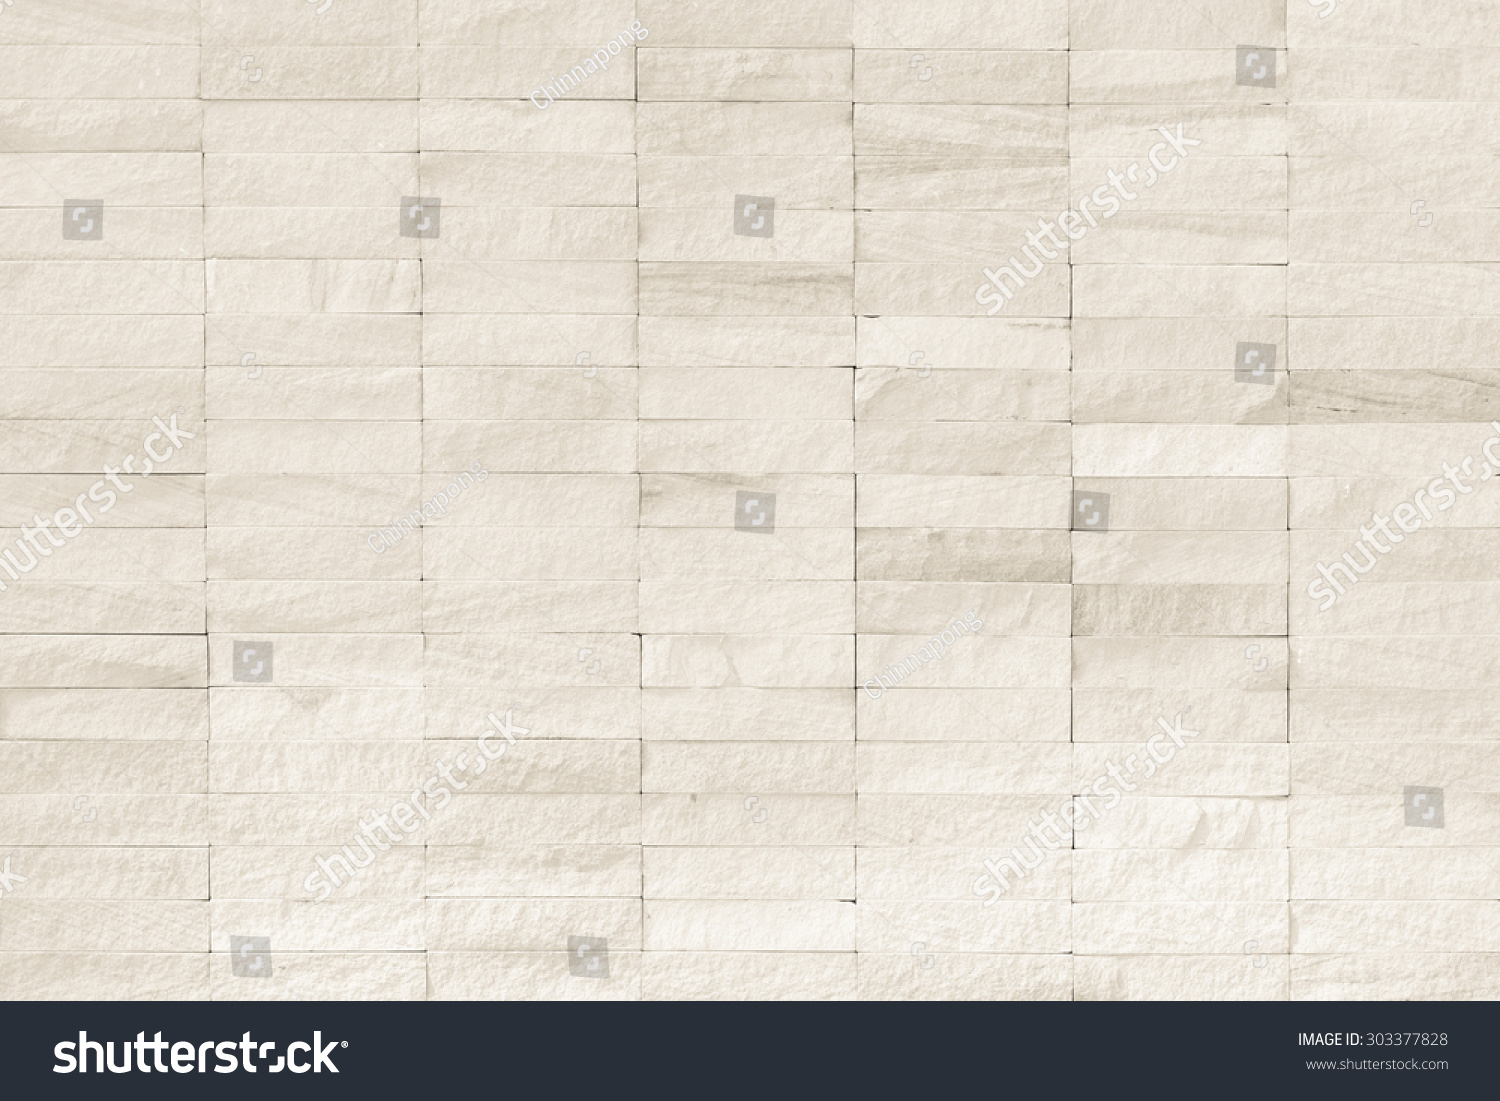 Rock Stone Tile Wall Texture Rough Patterned Background In ...